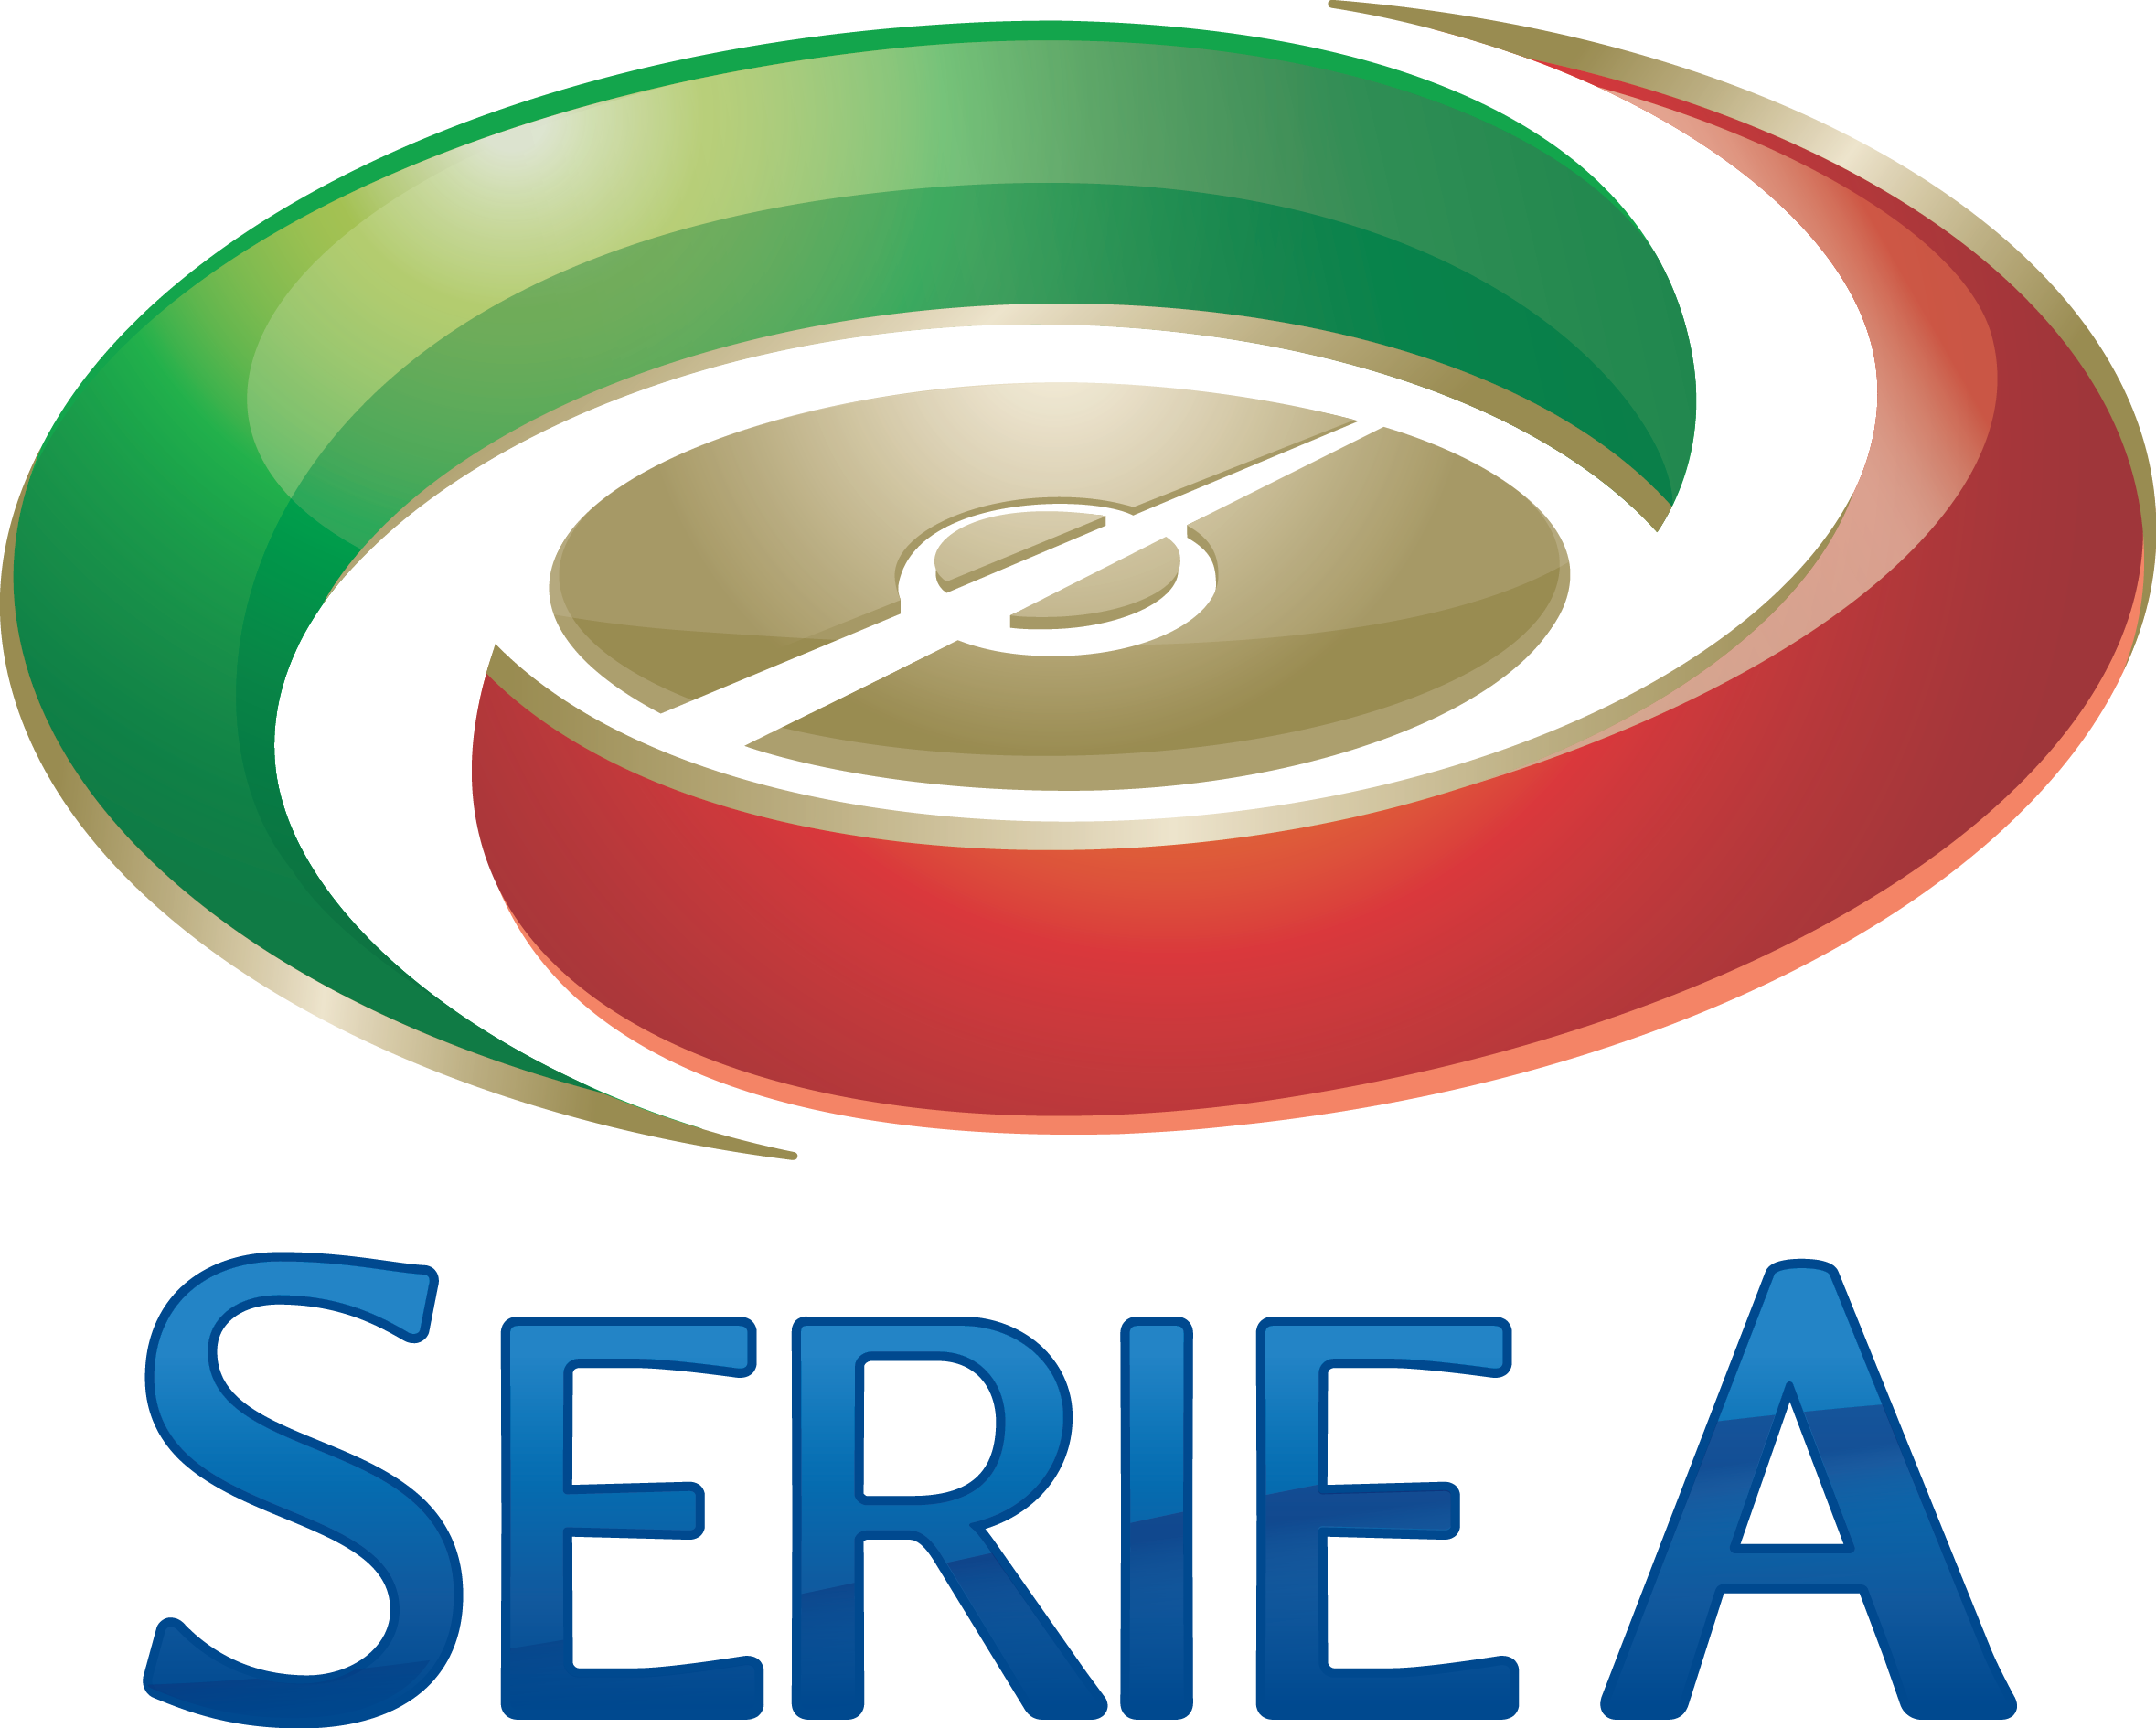 Sassuolo vs SSC Napoli 2-1 All goals and highlights 23/08/2015